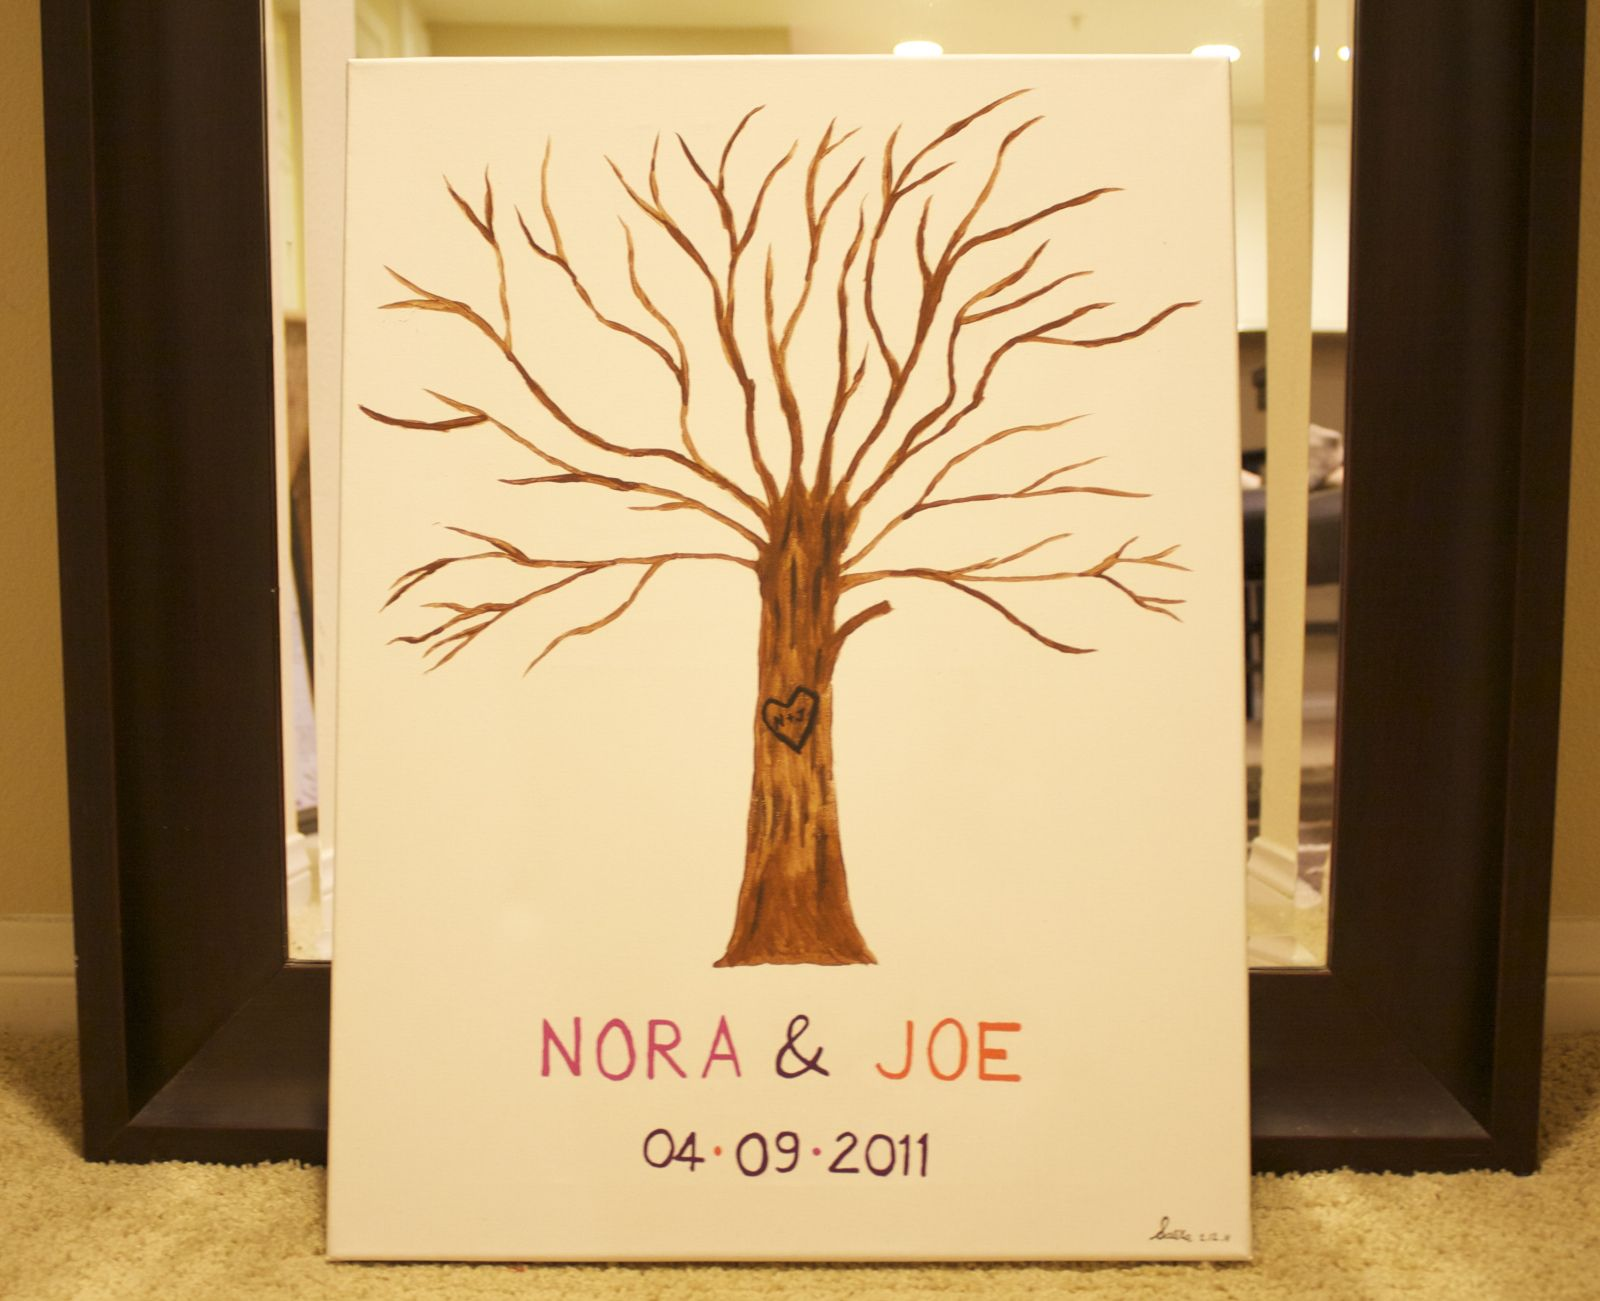 Do it yourself wedding thumbprint tree guest book wedding do it yourself wedding thumbprint tree guest book solutioingenieria Choice Image